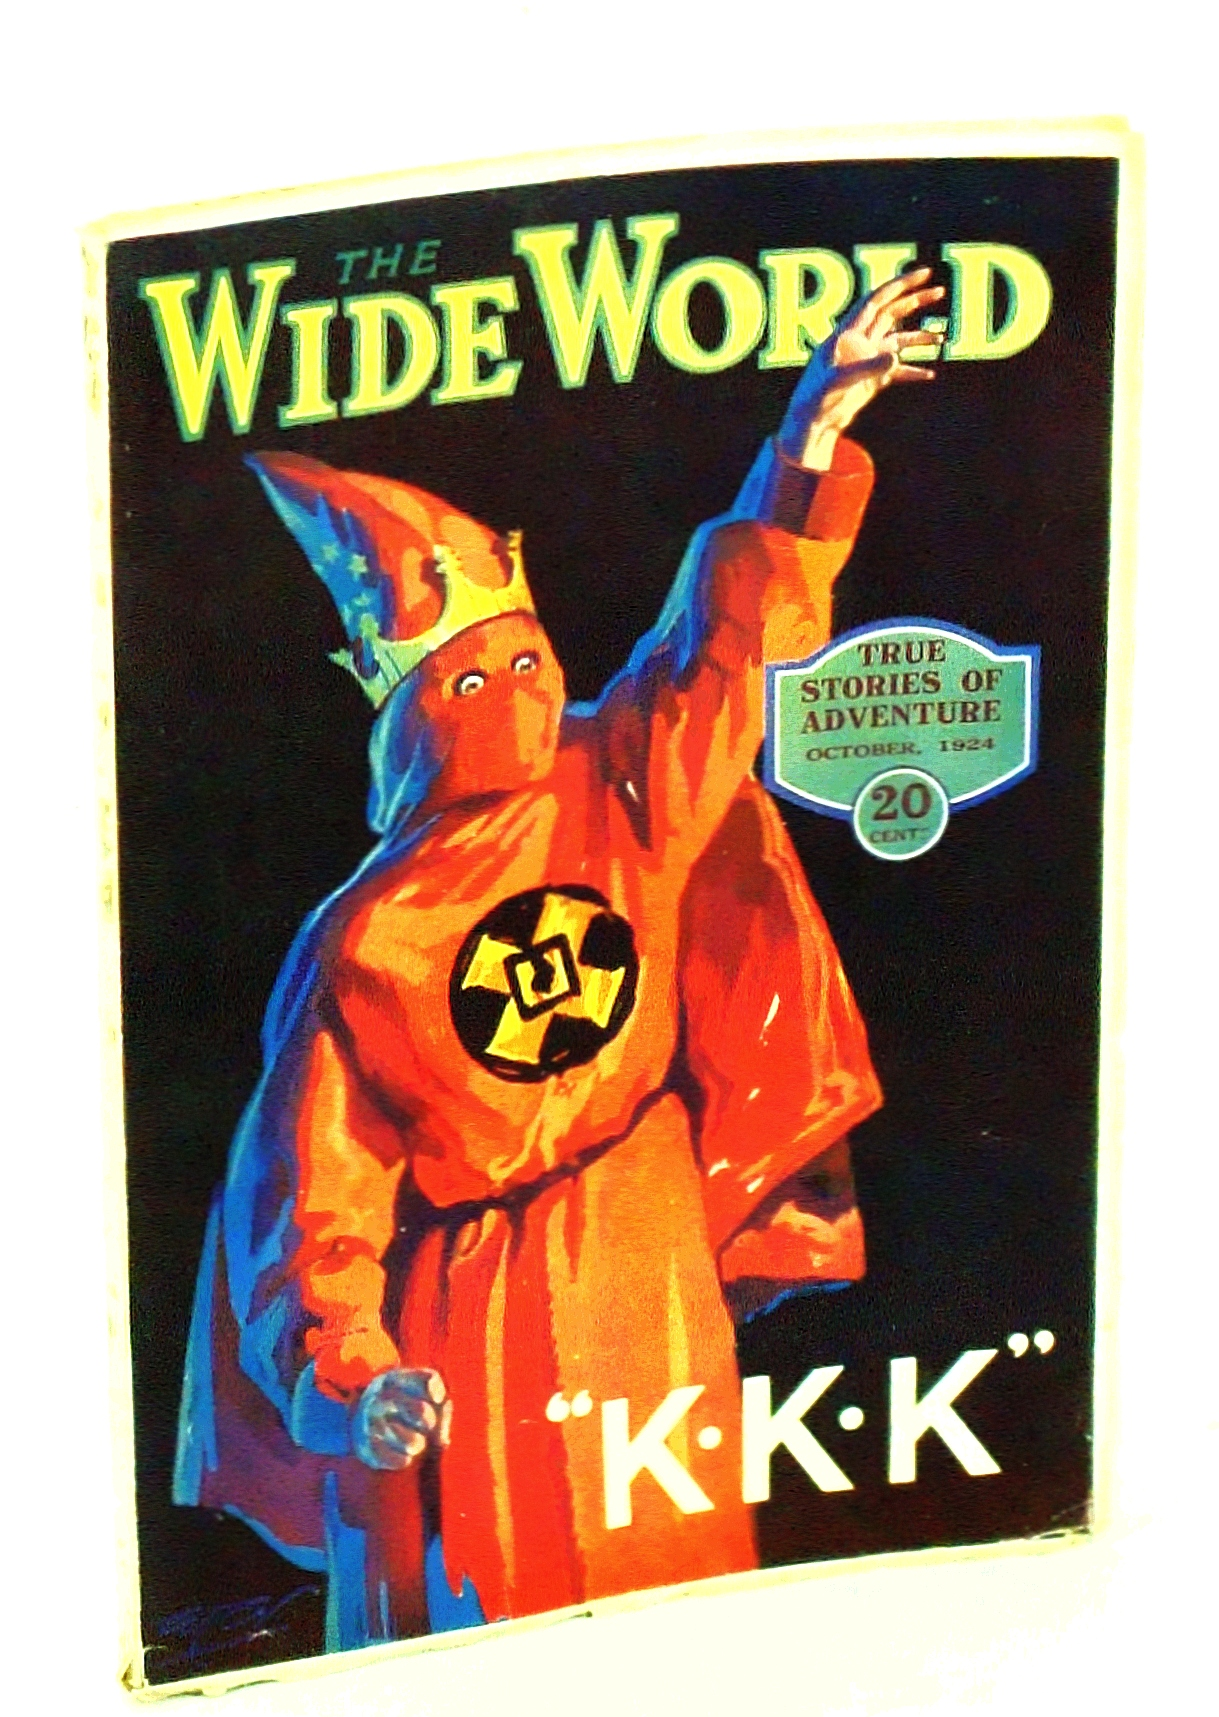 Image for The Wide World Magazine - True Stories of Adventure, October [Oct.] 1924, Vol. LIII, No. 318: KKK [Ku Klux Klan]